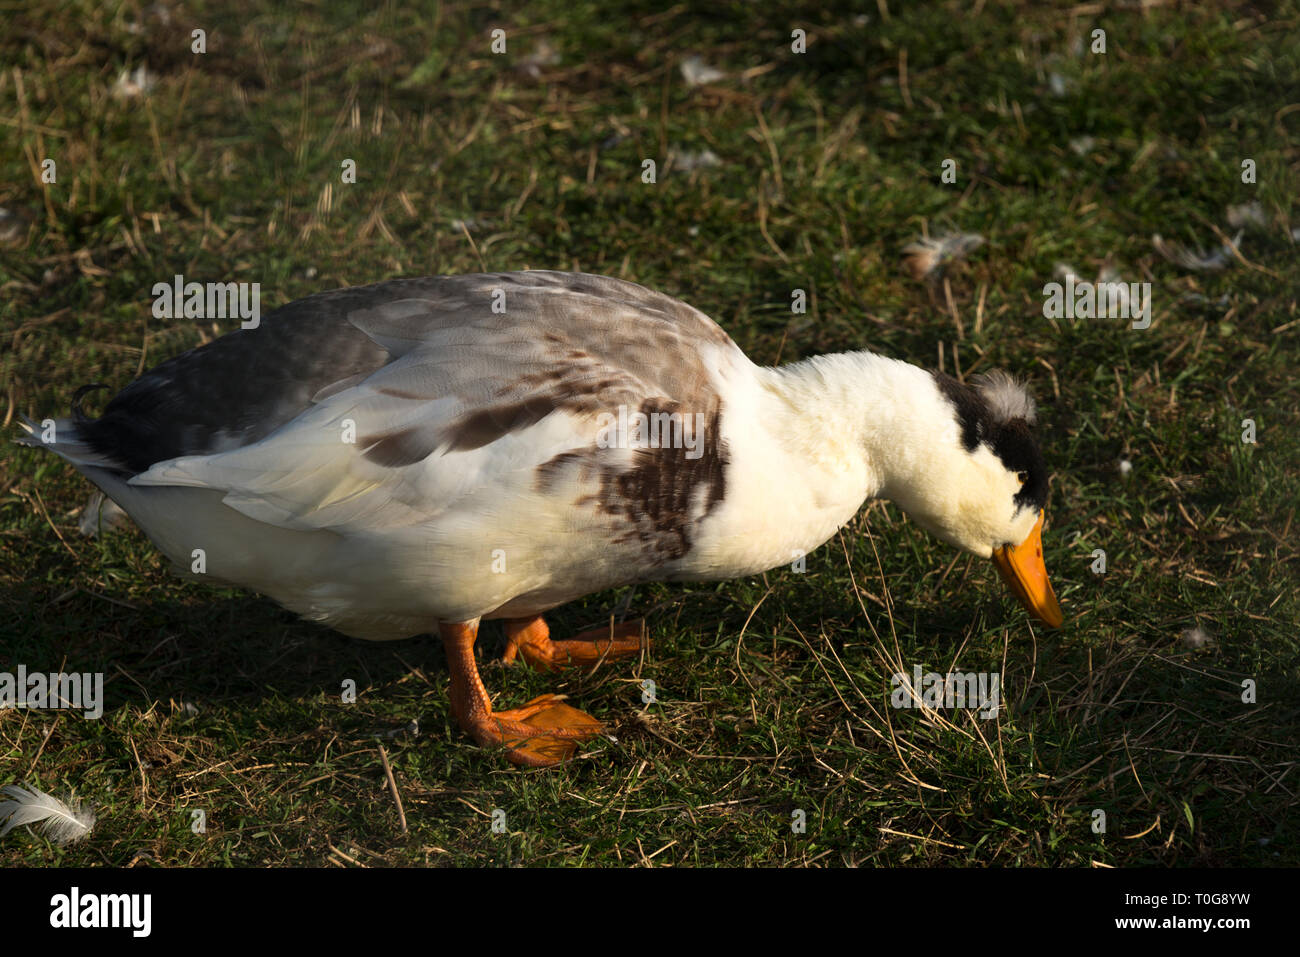 Domestic Duck (Anas platyrhynchos domesticus) - Stock Image